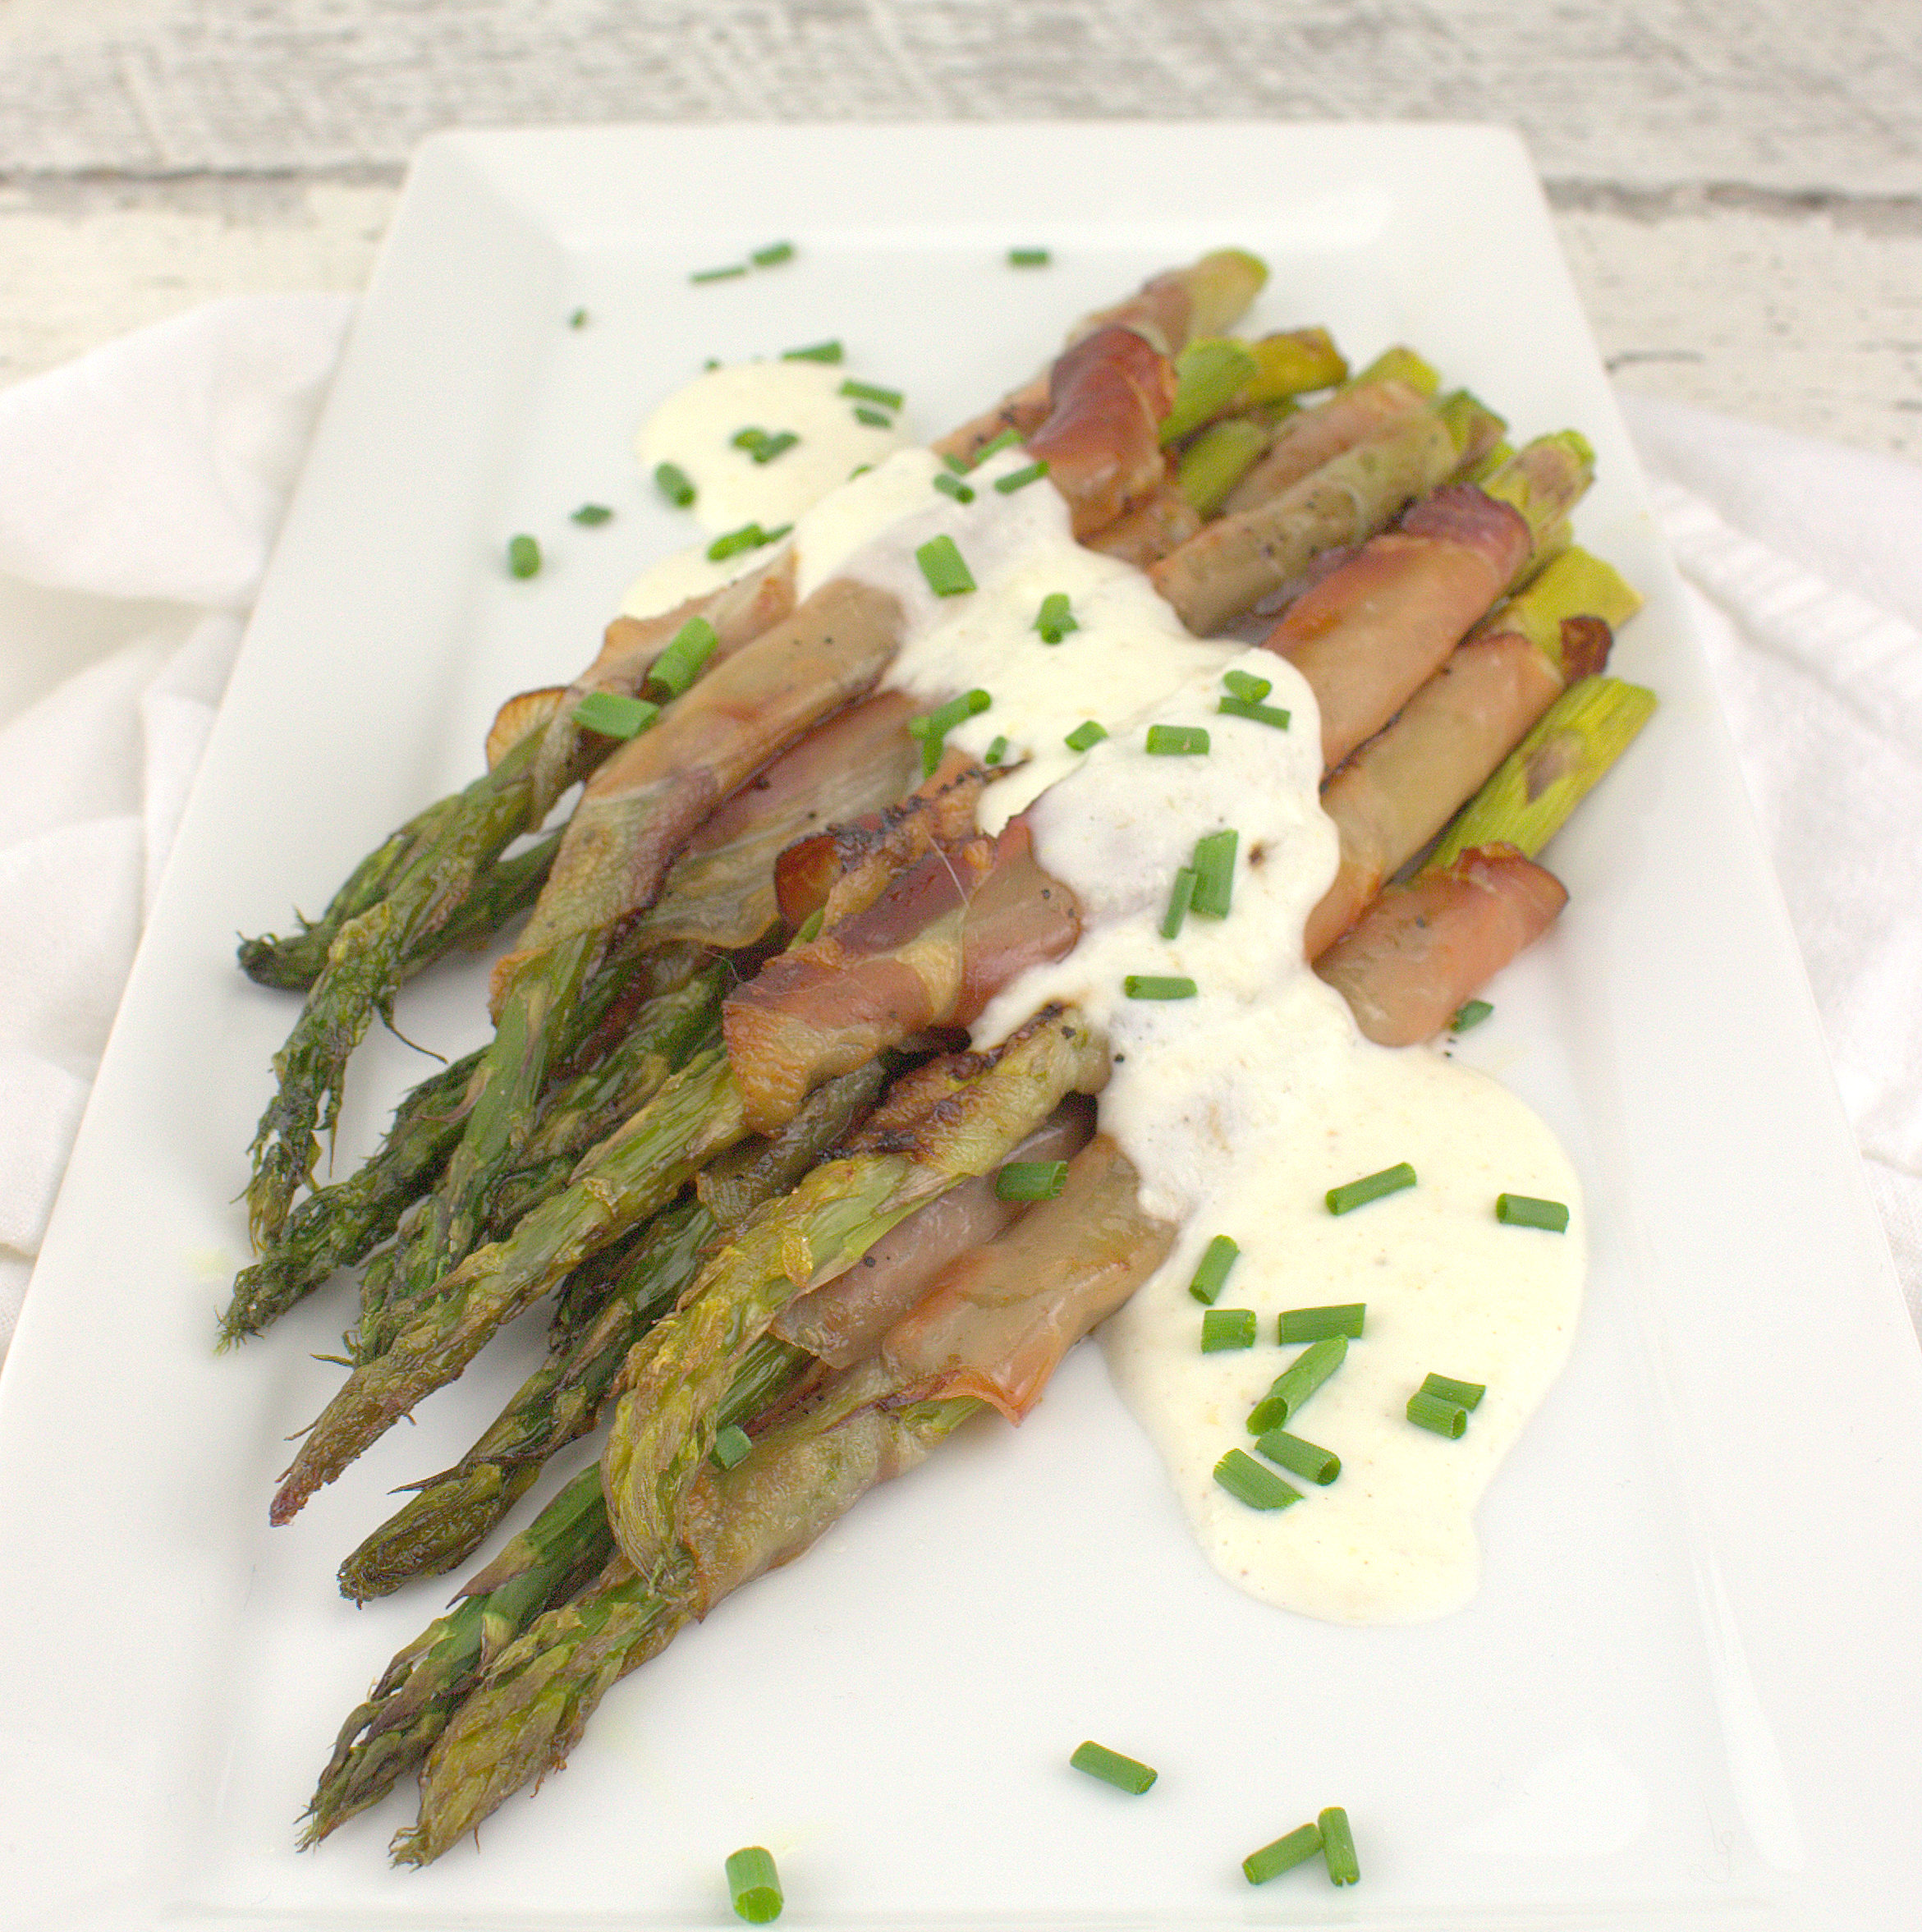 Roasted Asparagus with Speck and Creamy Horseradish Sauce